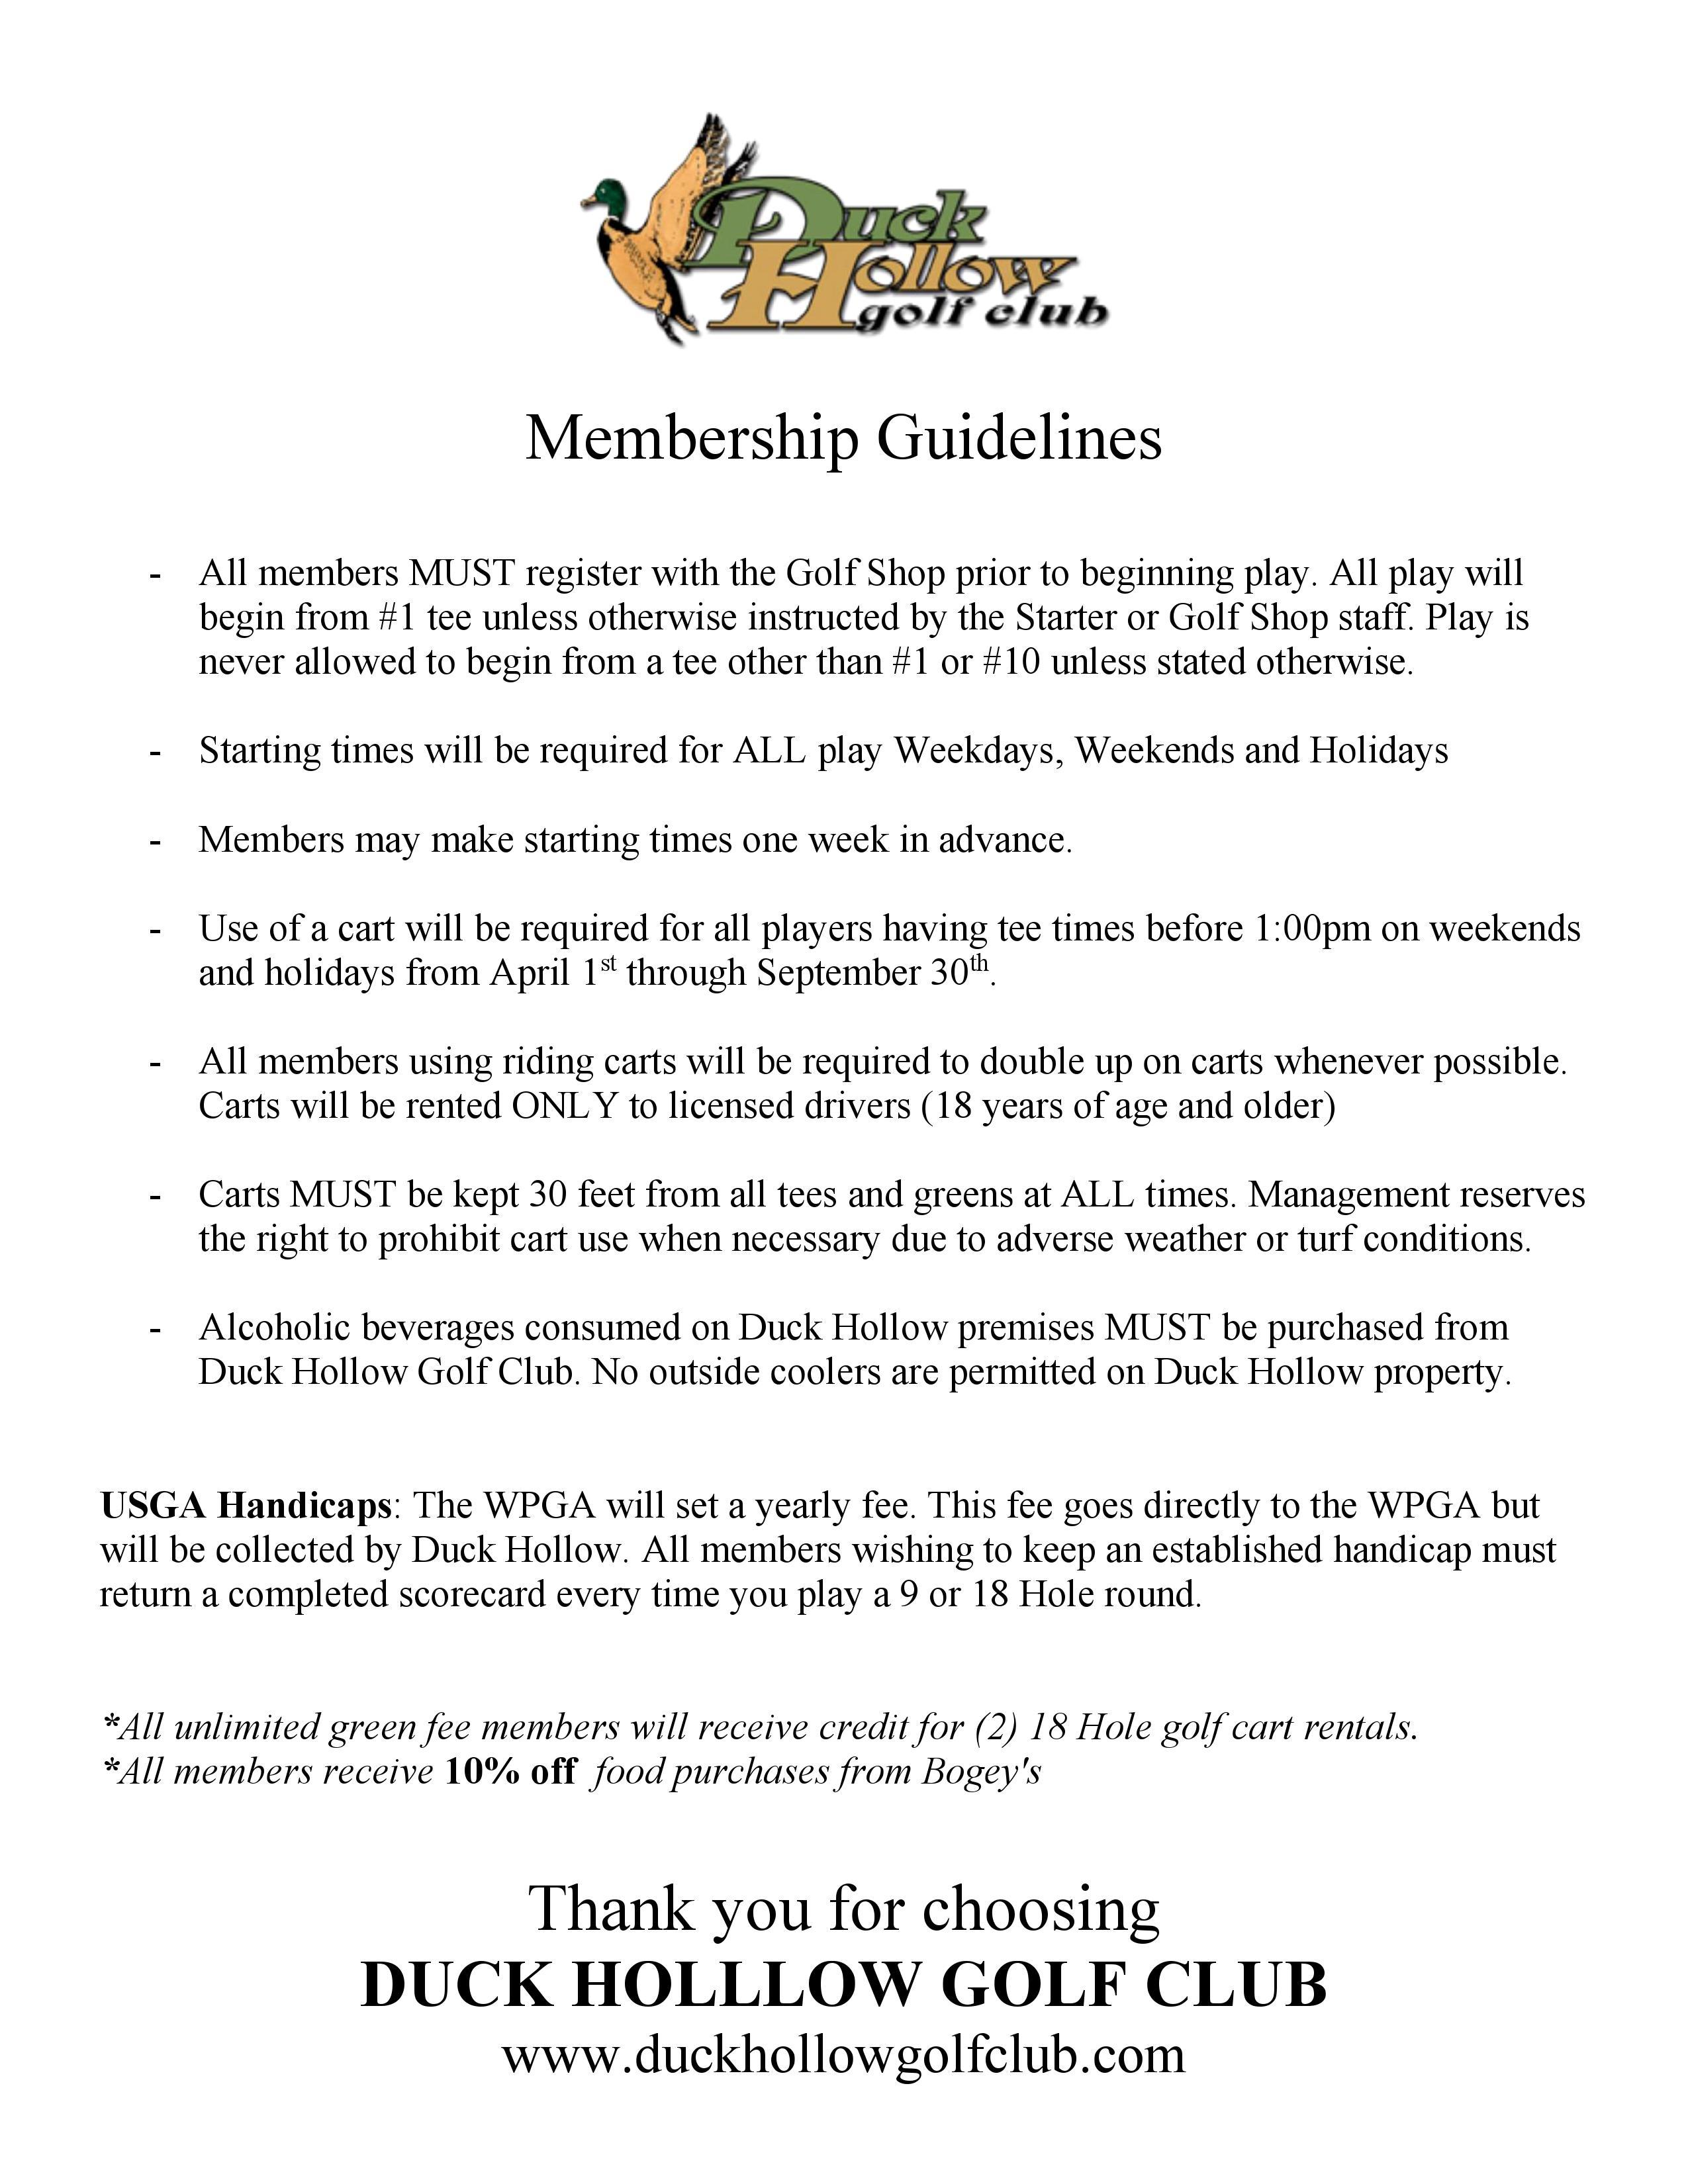 Duck Hollow Membership Guidelines